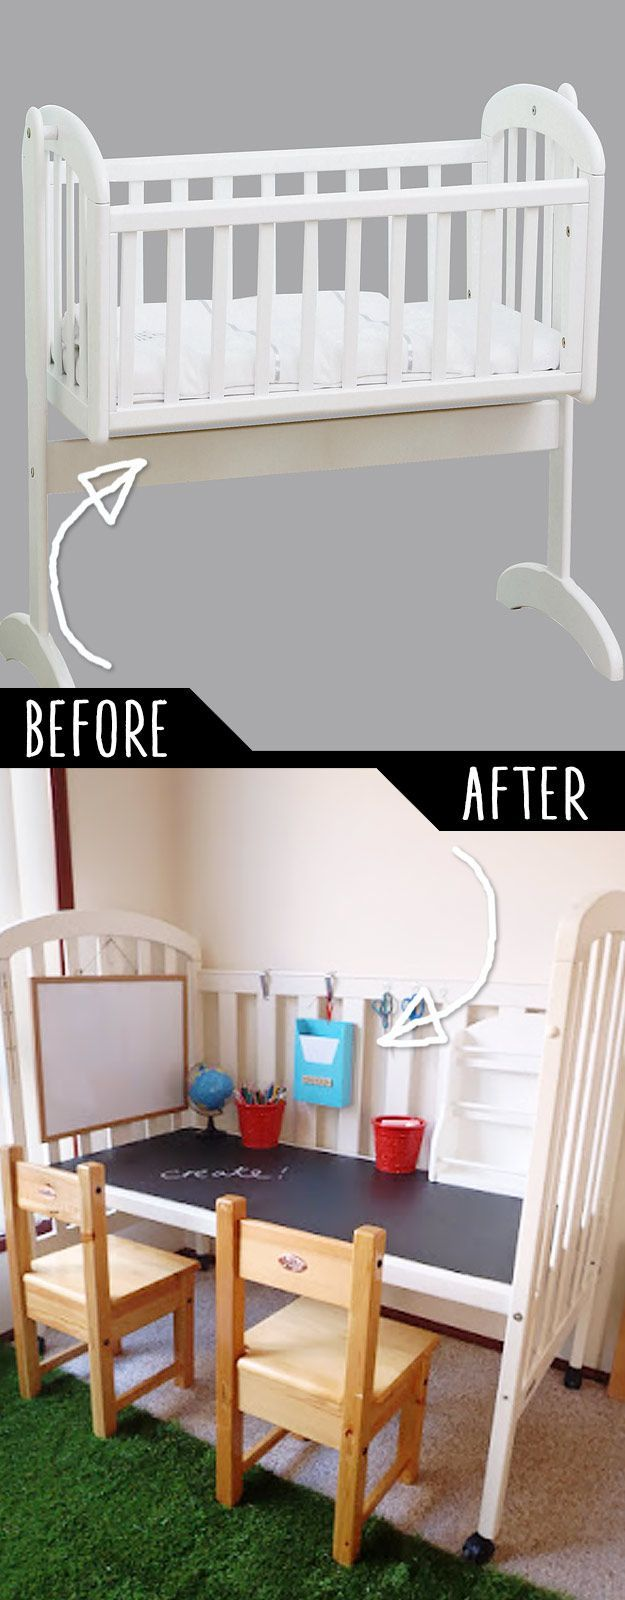 19 Diy Idea To Play With Old Furniture 8